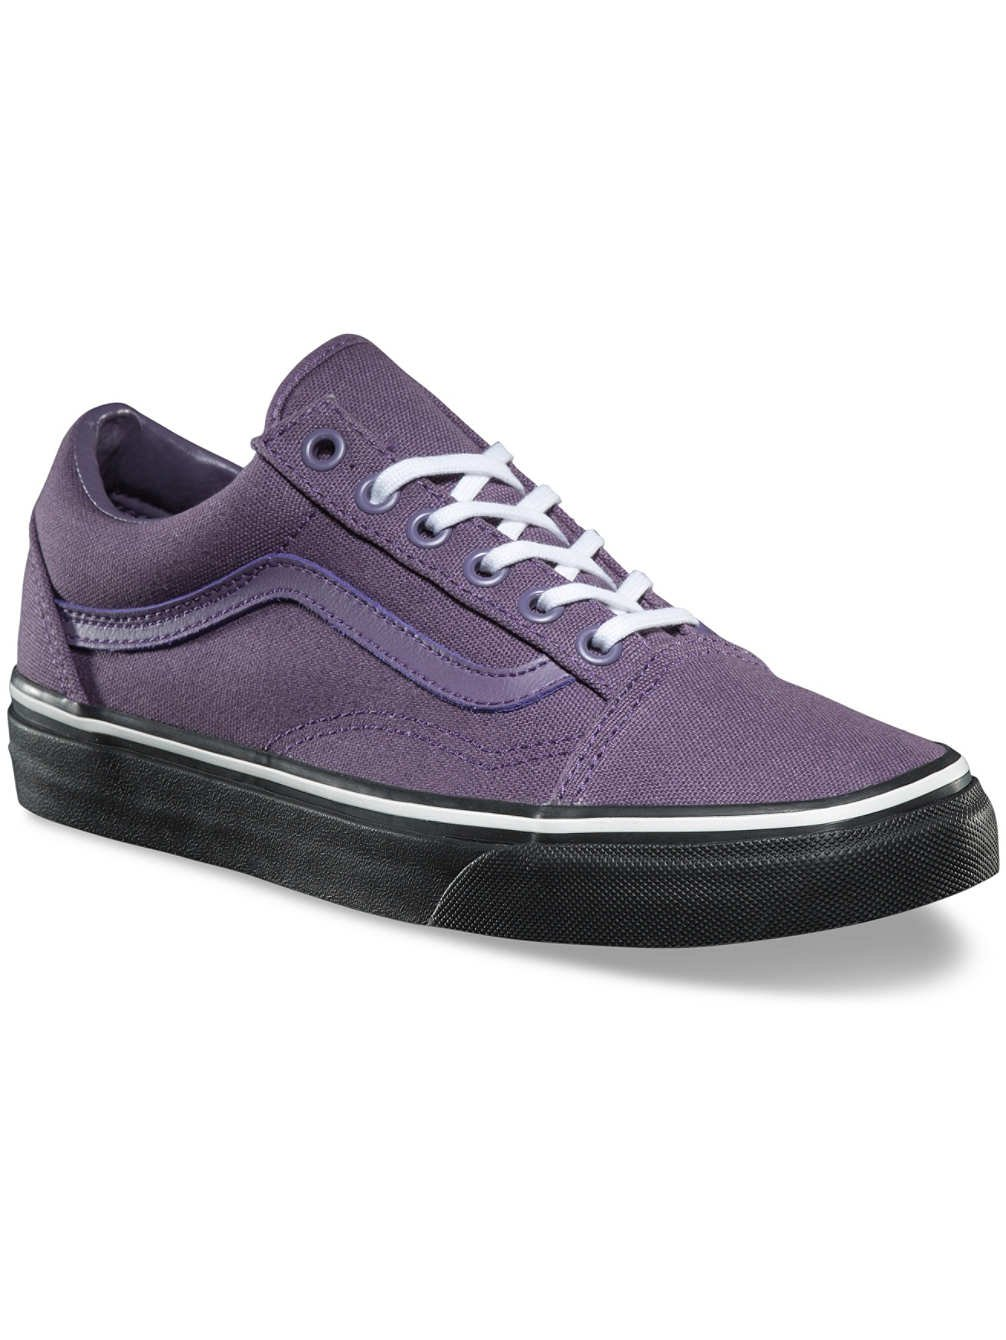 Vans Unisex Old Skool Classic Skate Shoes B075MKCKBN 5 M US Women / 3.5 M US Men|Montana Grape/Black